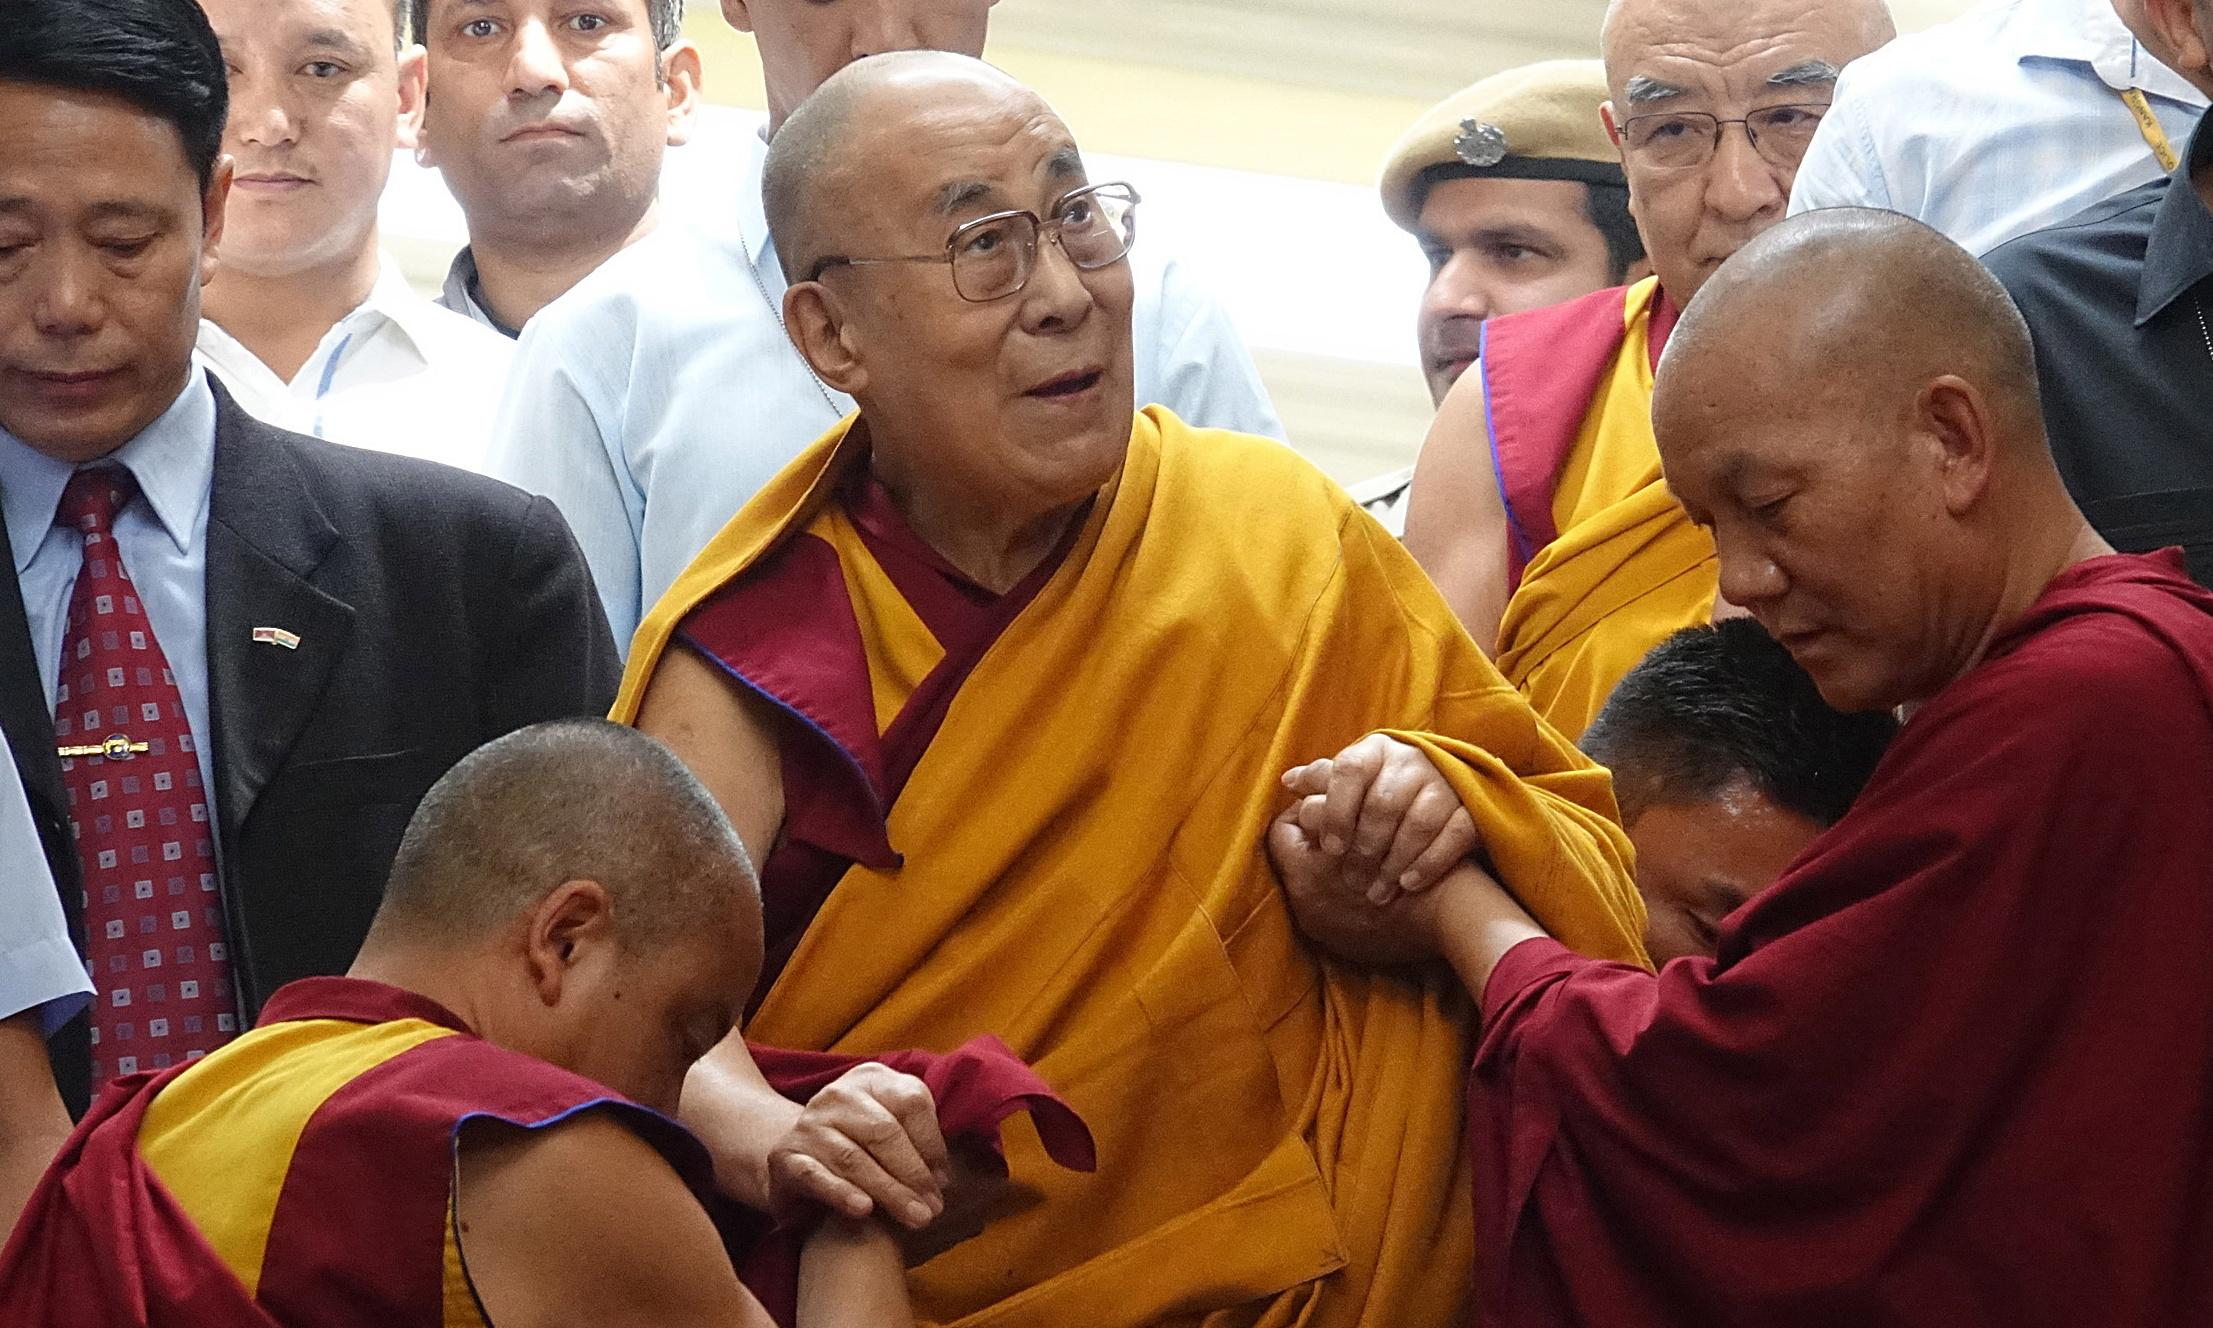 Dalai Lama lets slip how India vetoed his meeting with China's leader in 2014